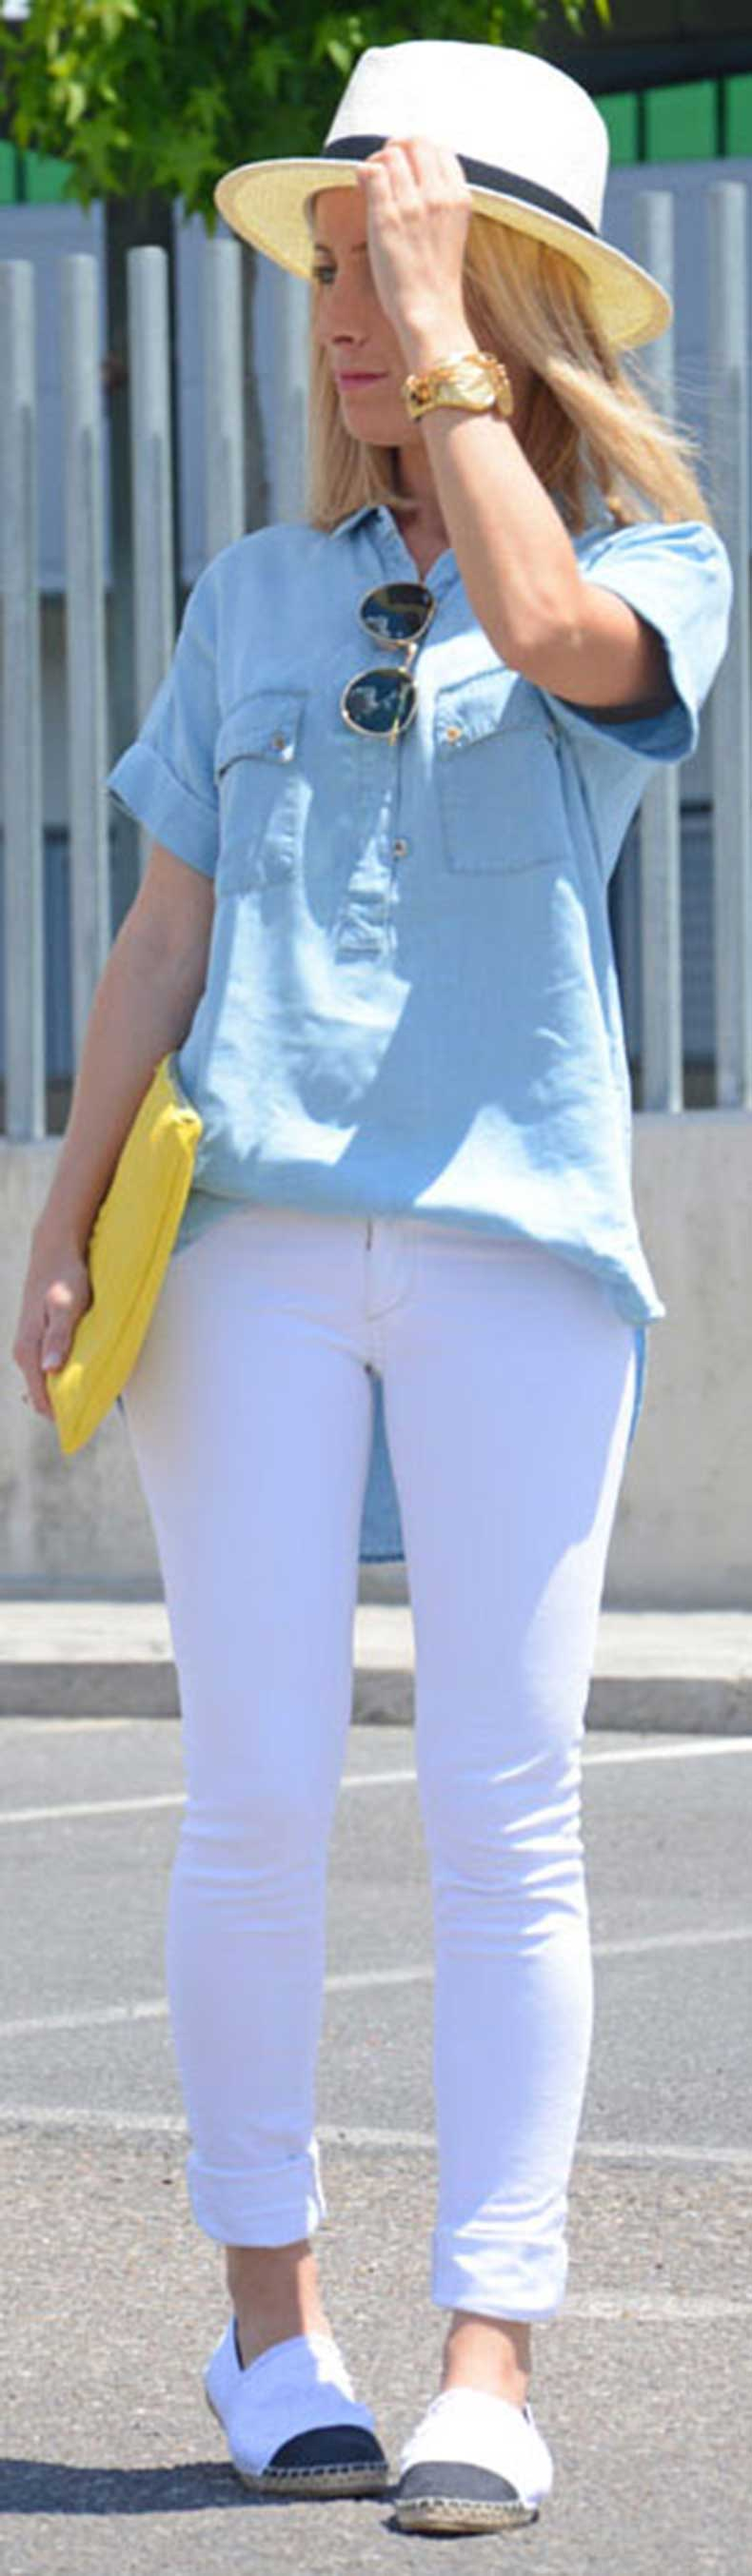 White-Jeans-Short-Sleeve-Denim-Shirt-Outfit